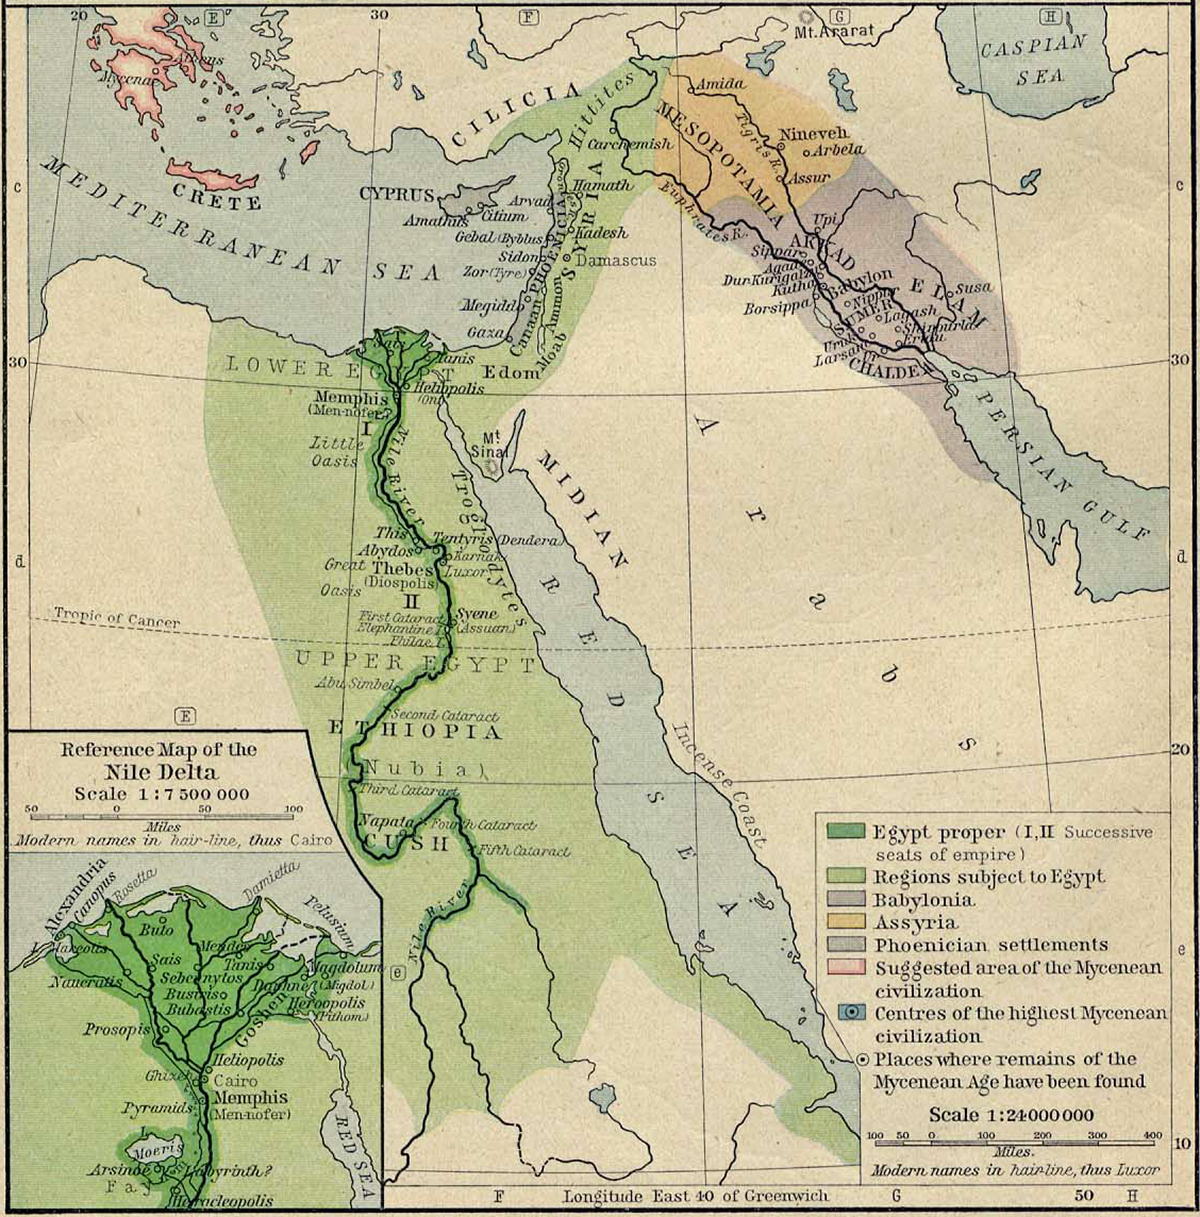 Map of Ancient Egypt, Ancient Syria, and Ancient Mesopotamia about 1450 B.C.